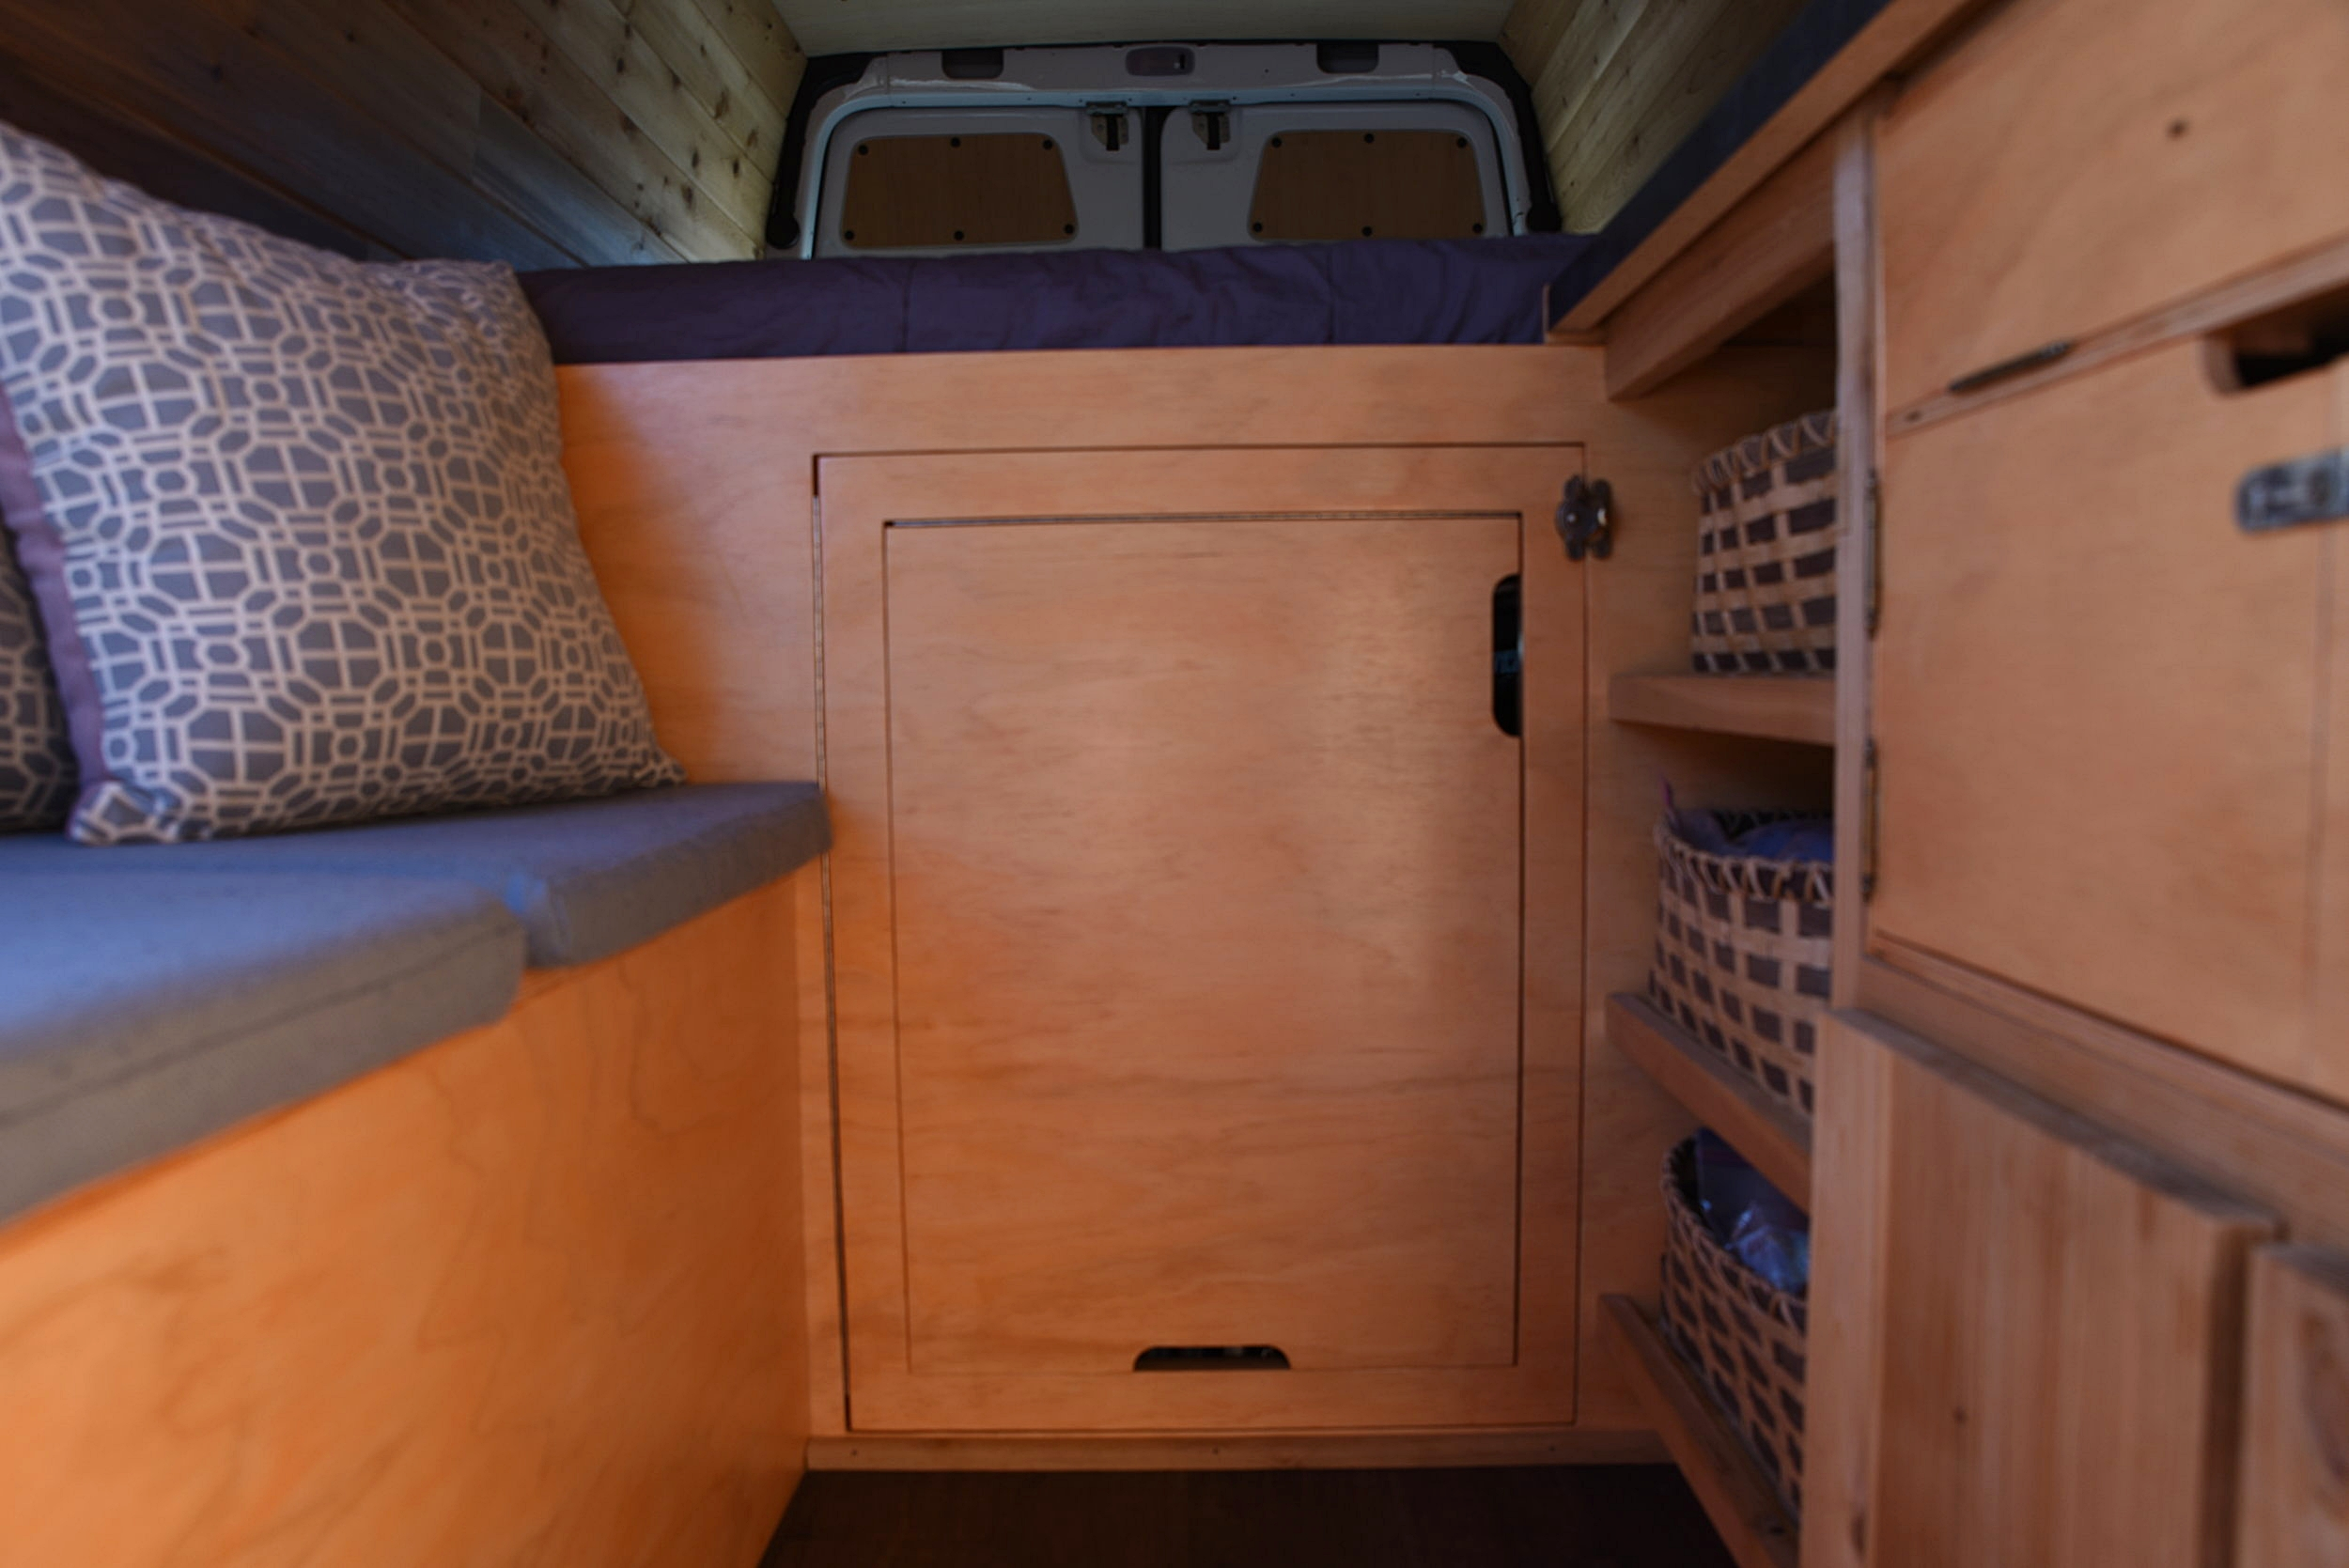 The door fits within the front of the bed platform, hinging out. The table fits within this door, hinging up.